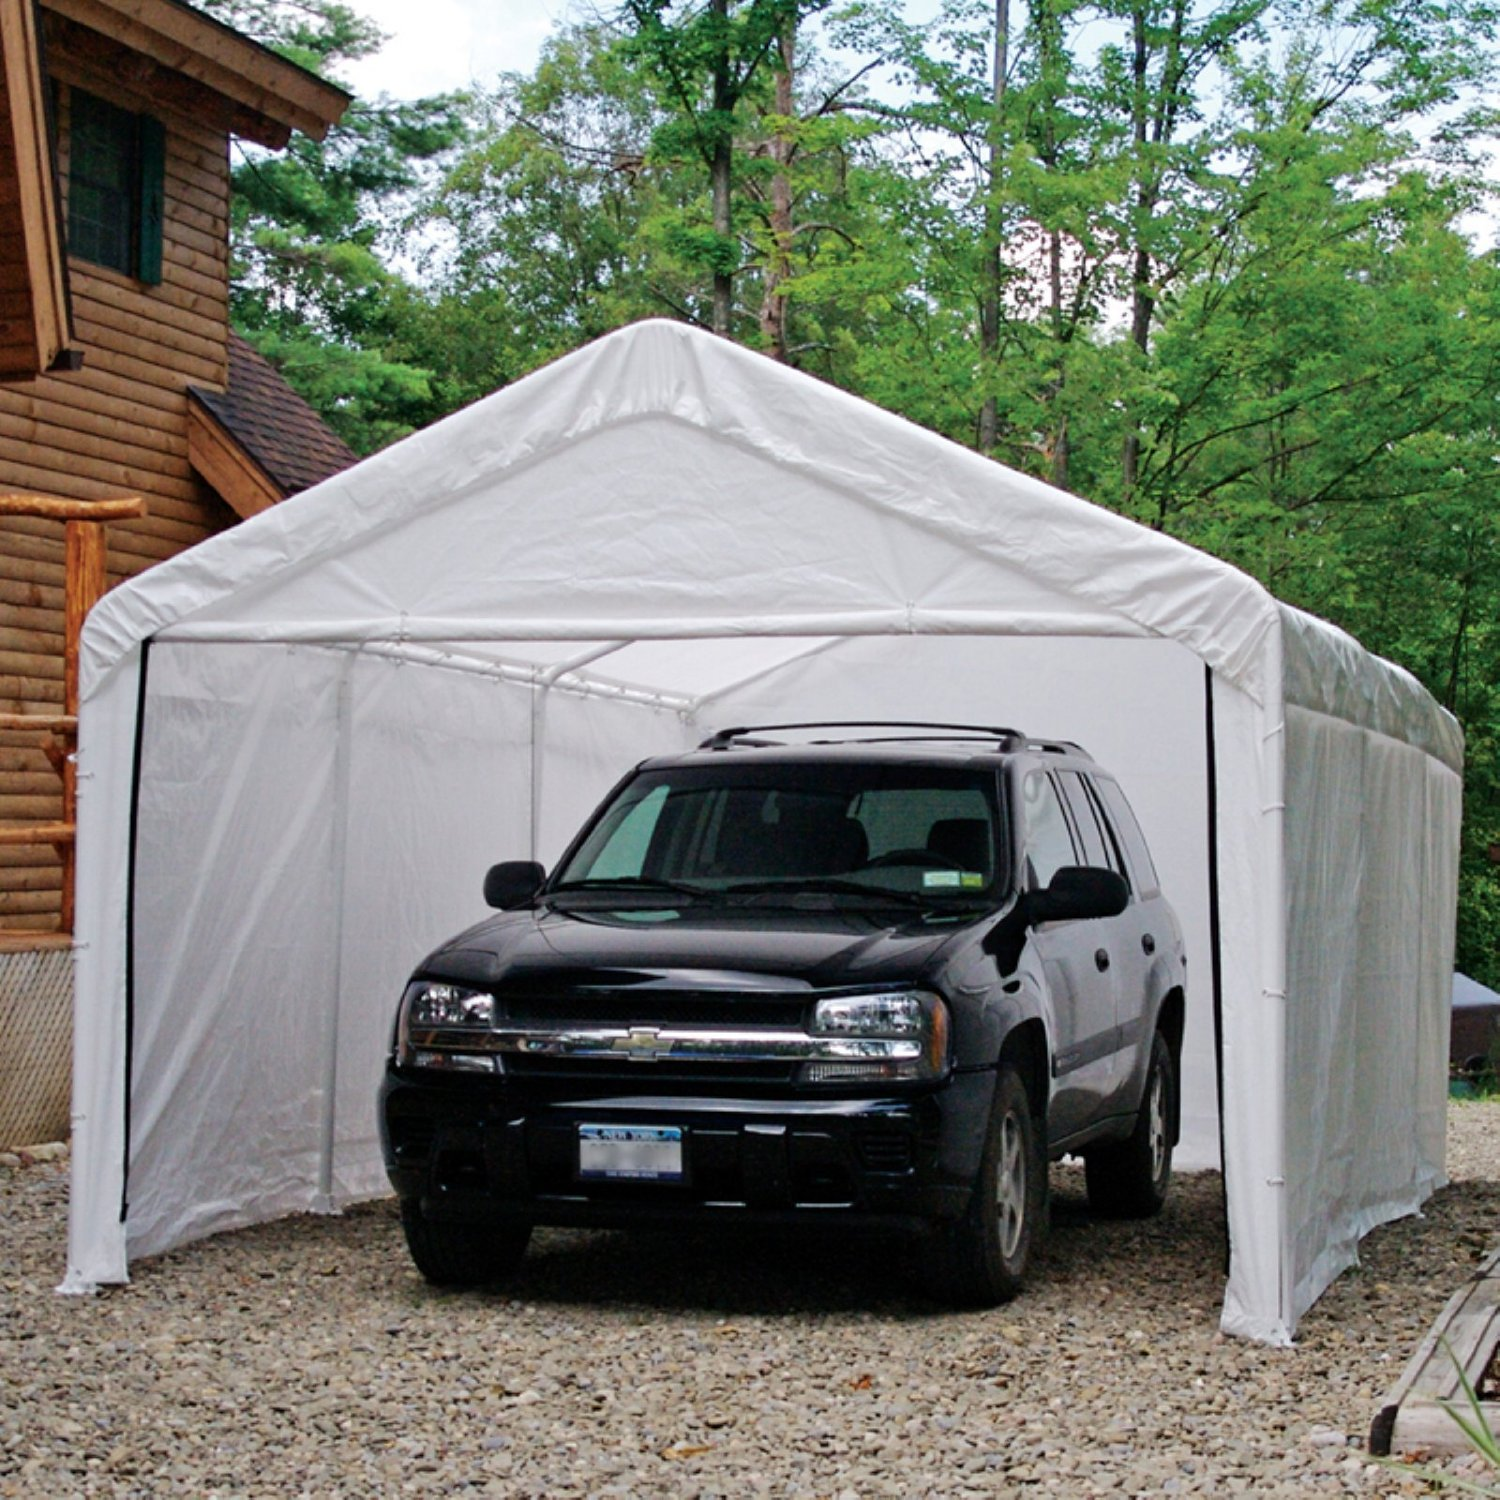 Shelterlogic 10 Ft. X 20 Enclosure Kit - White Canopy